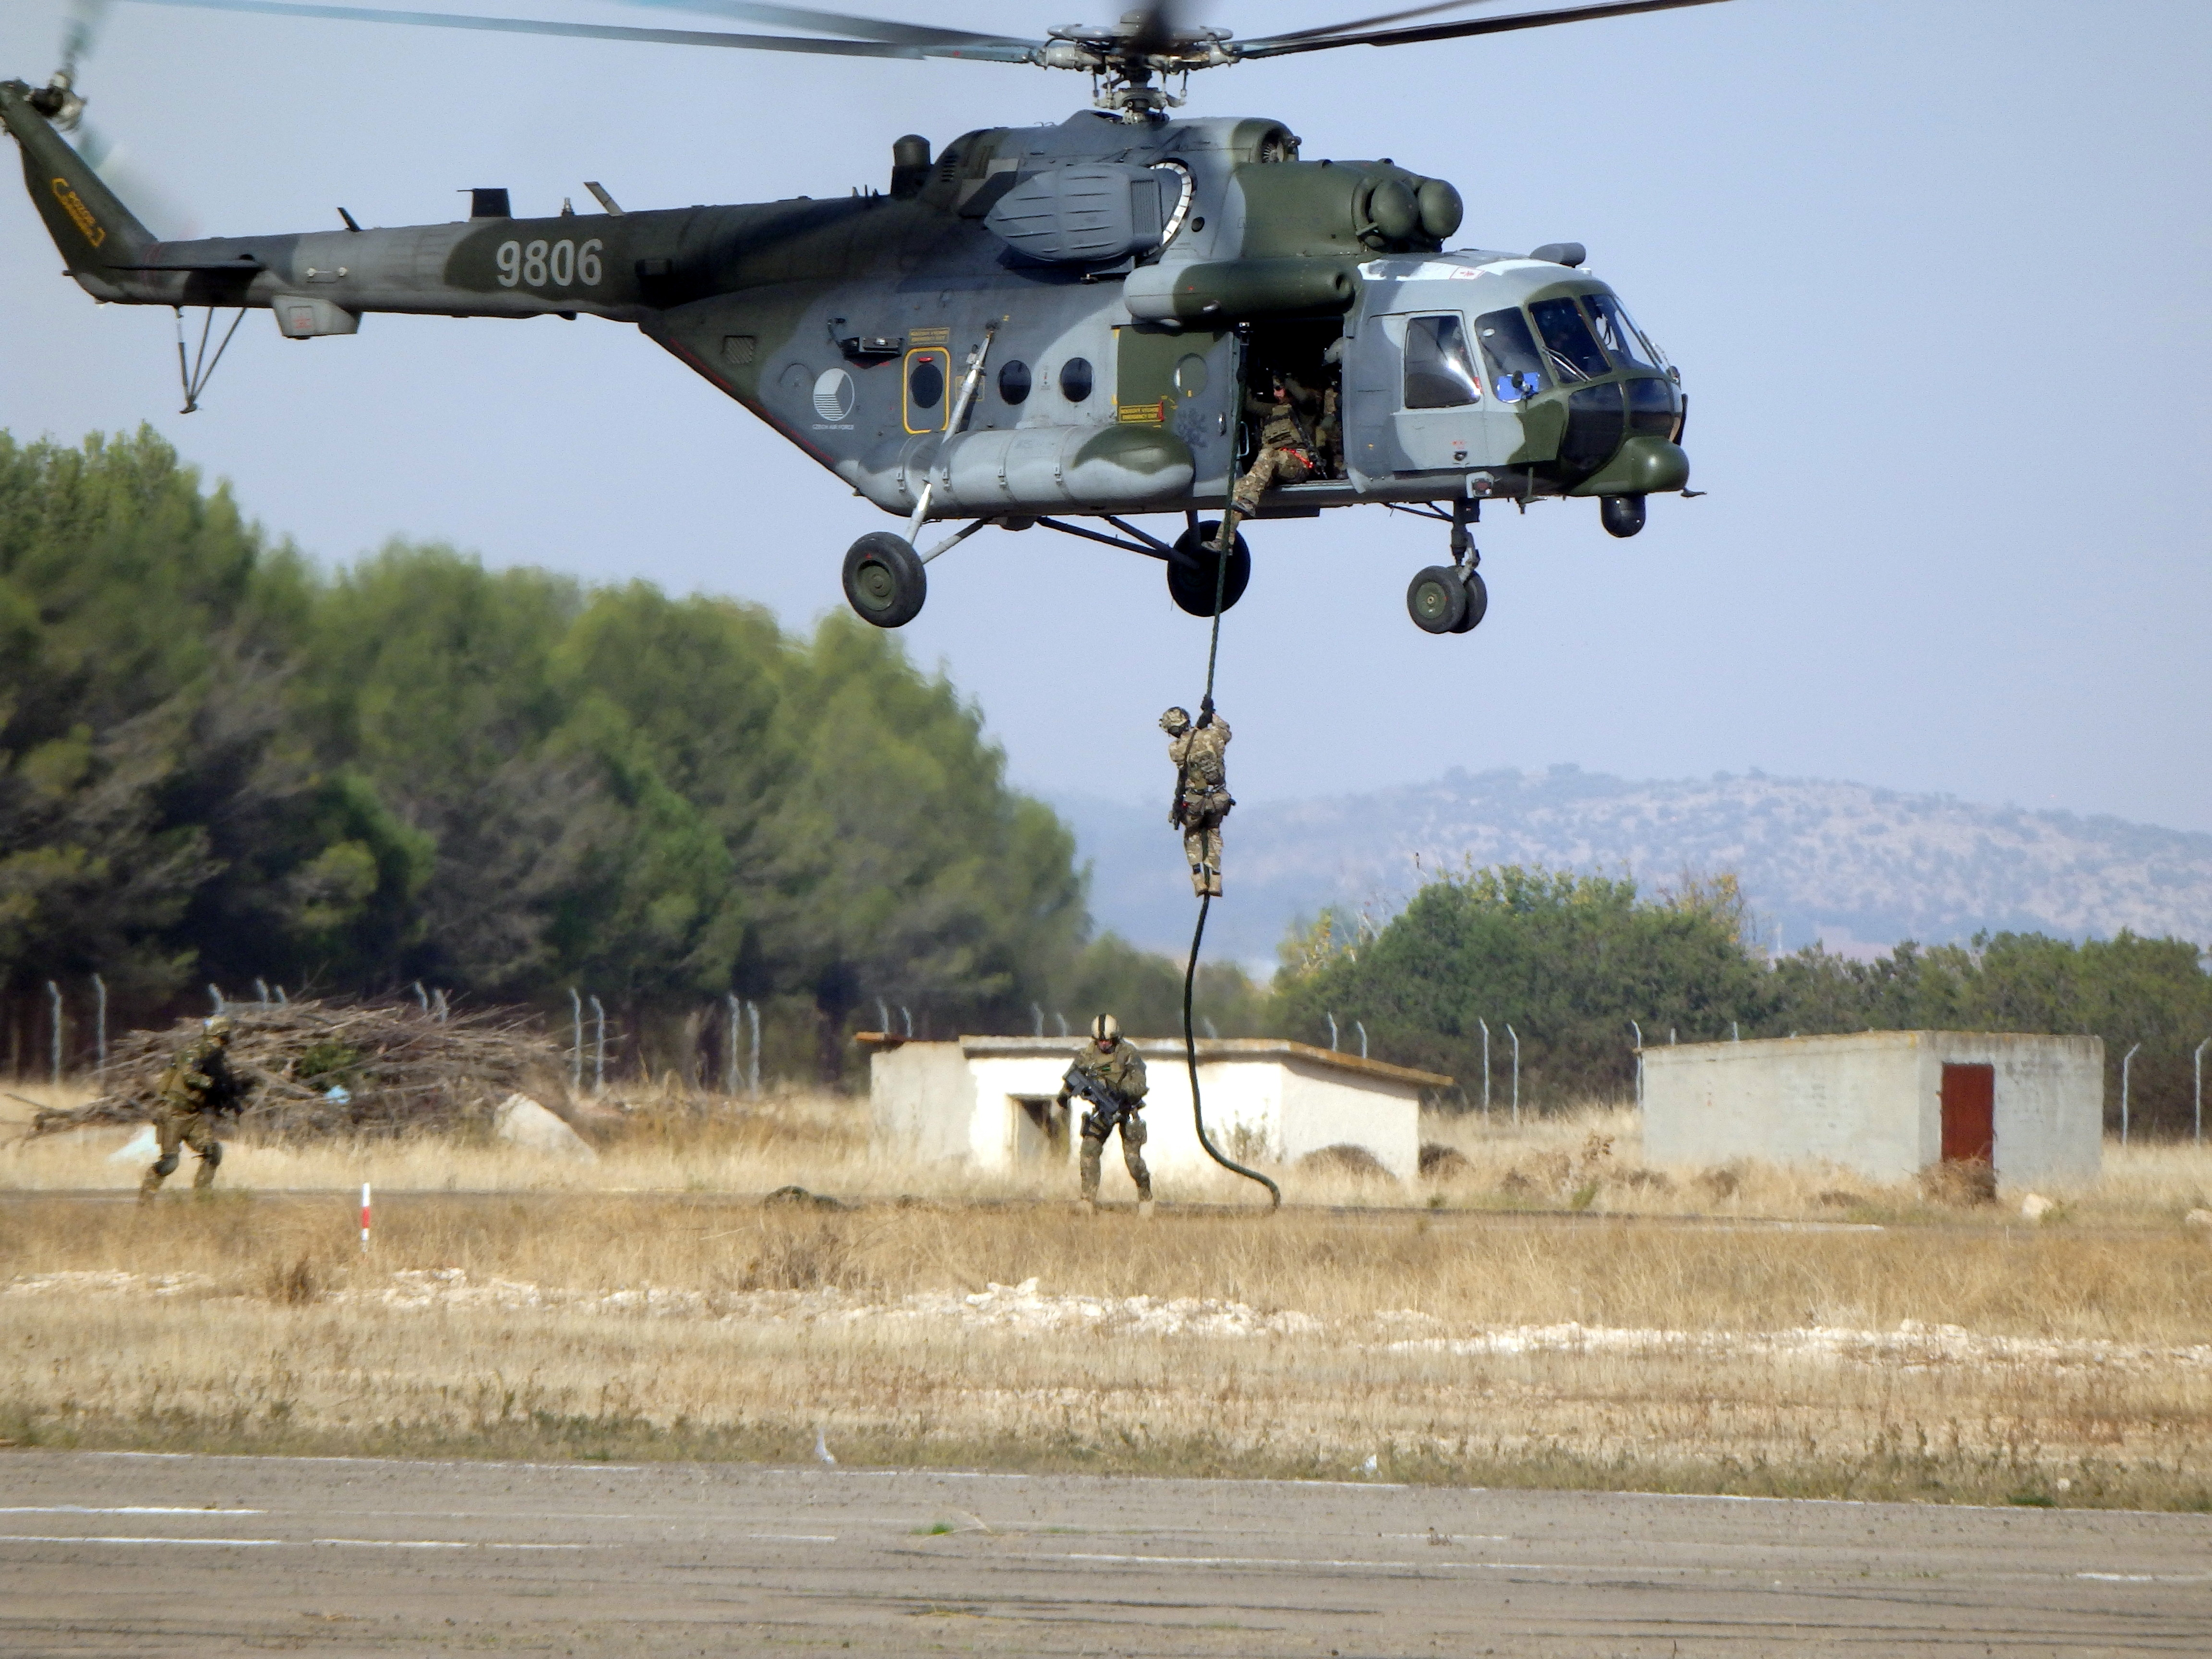 NATO forces conduct fast rope insertion